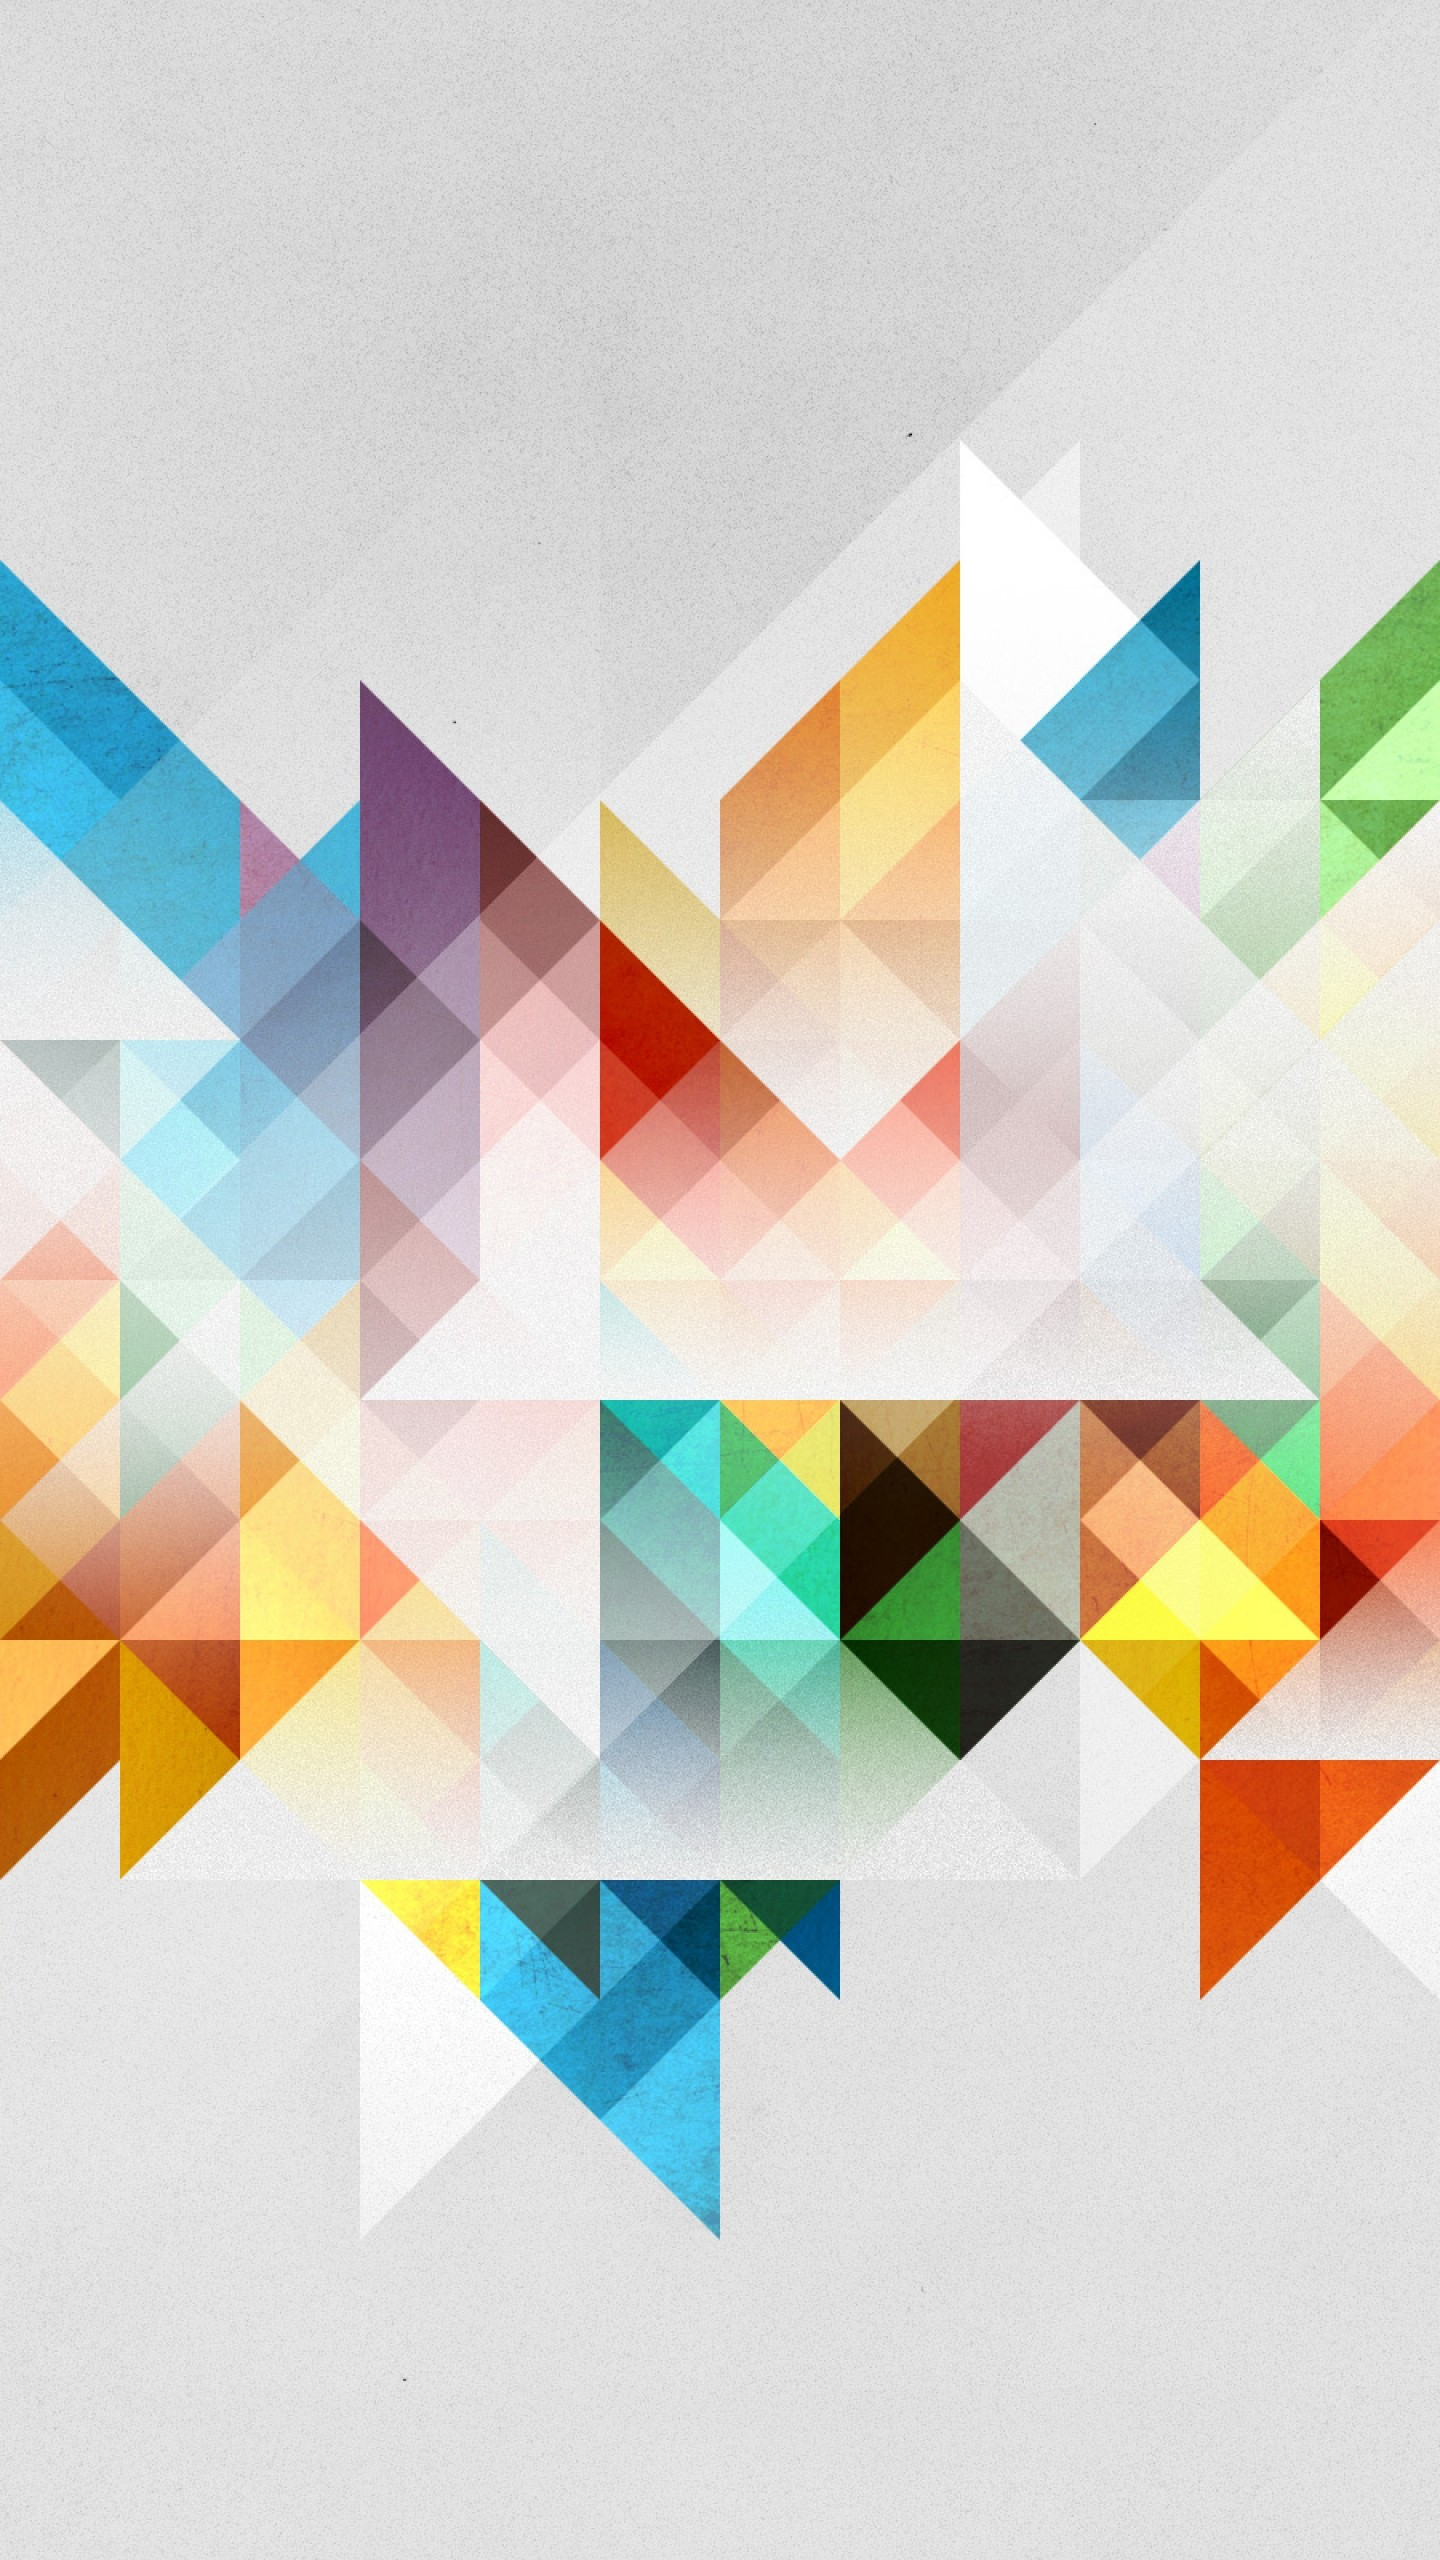 Geometric Shapes Wallpaper (68+ Images